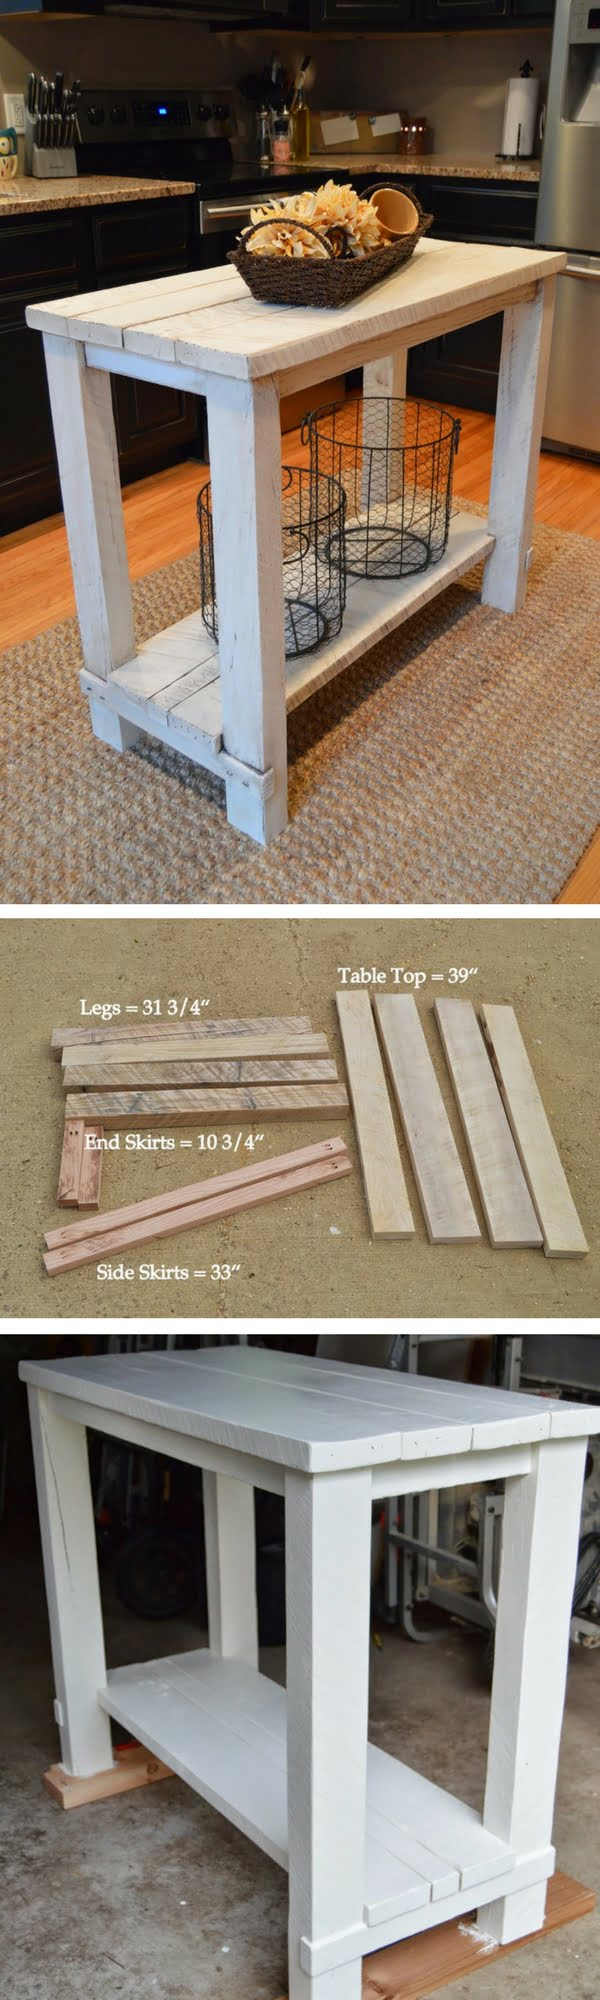 25 Easy DIY Kitchen Island Ideas That You Can Build on a Budget - Check out the tutorial on how to build a DIY kitchen island from reclaimed wood